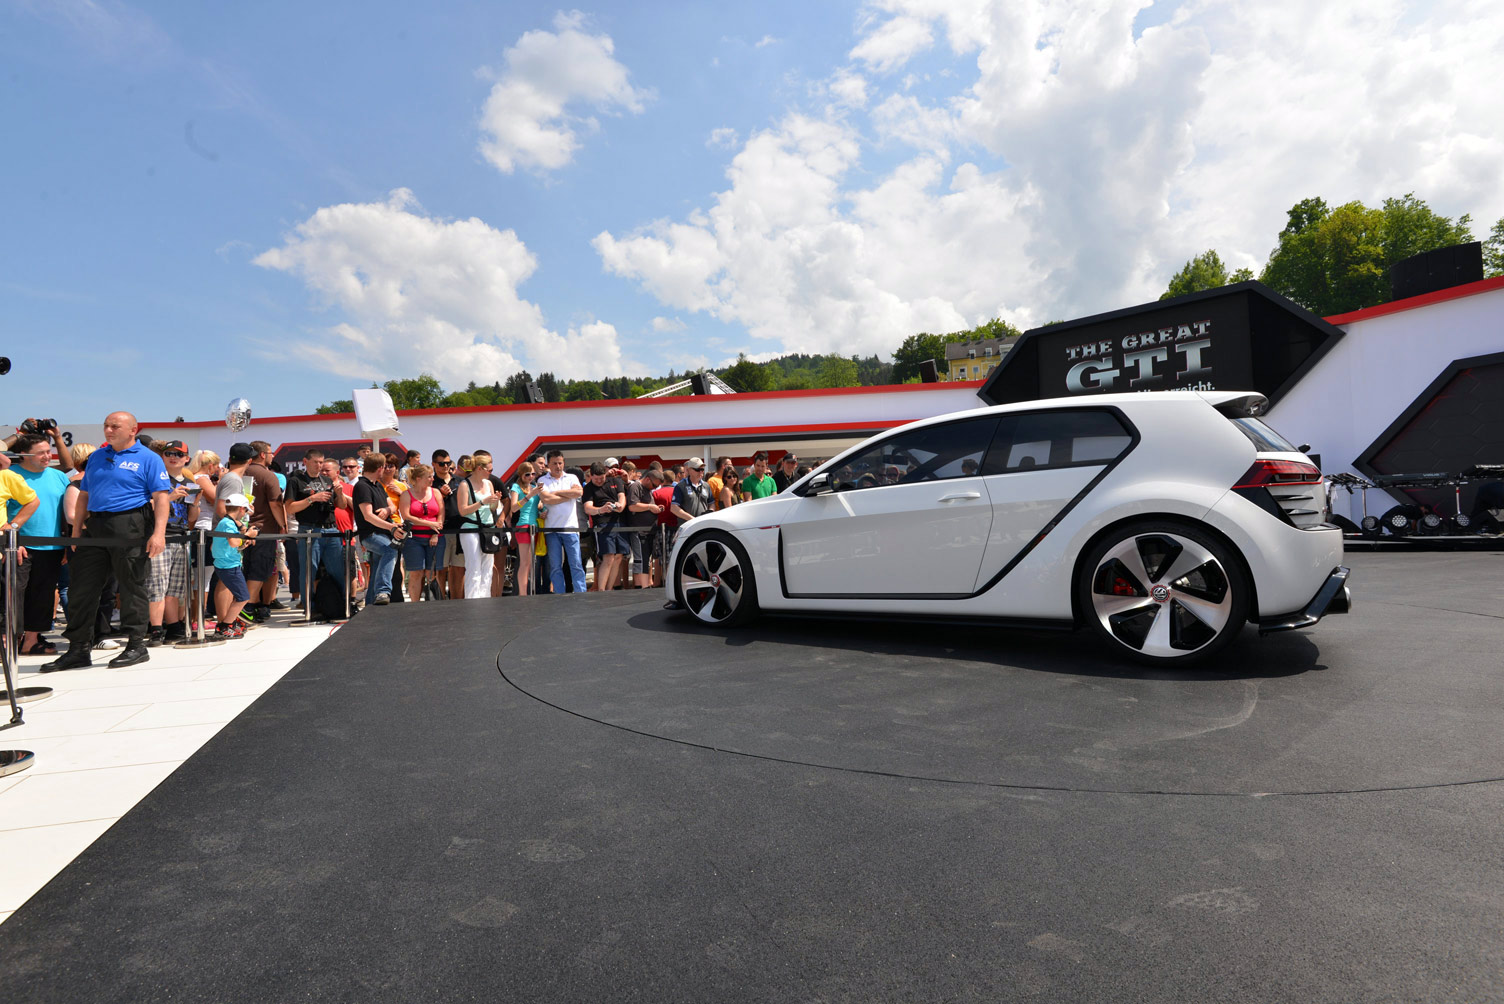 volkswagen-design-vision-gti-worthersee-031